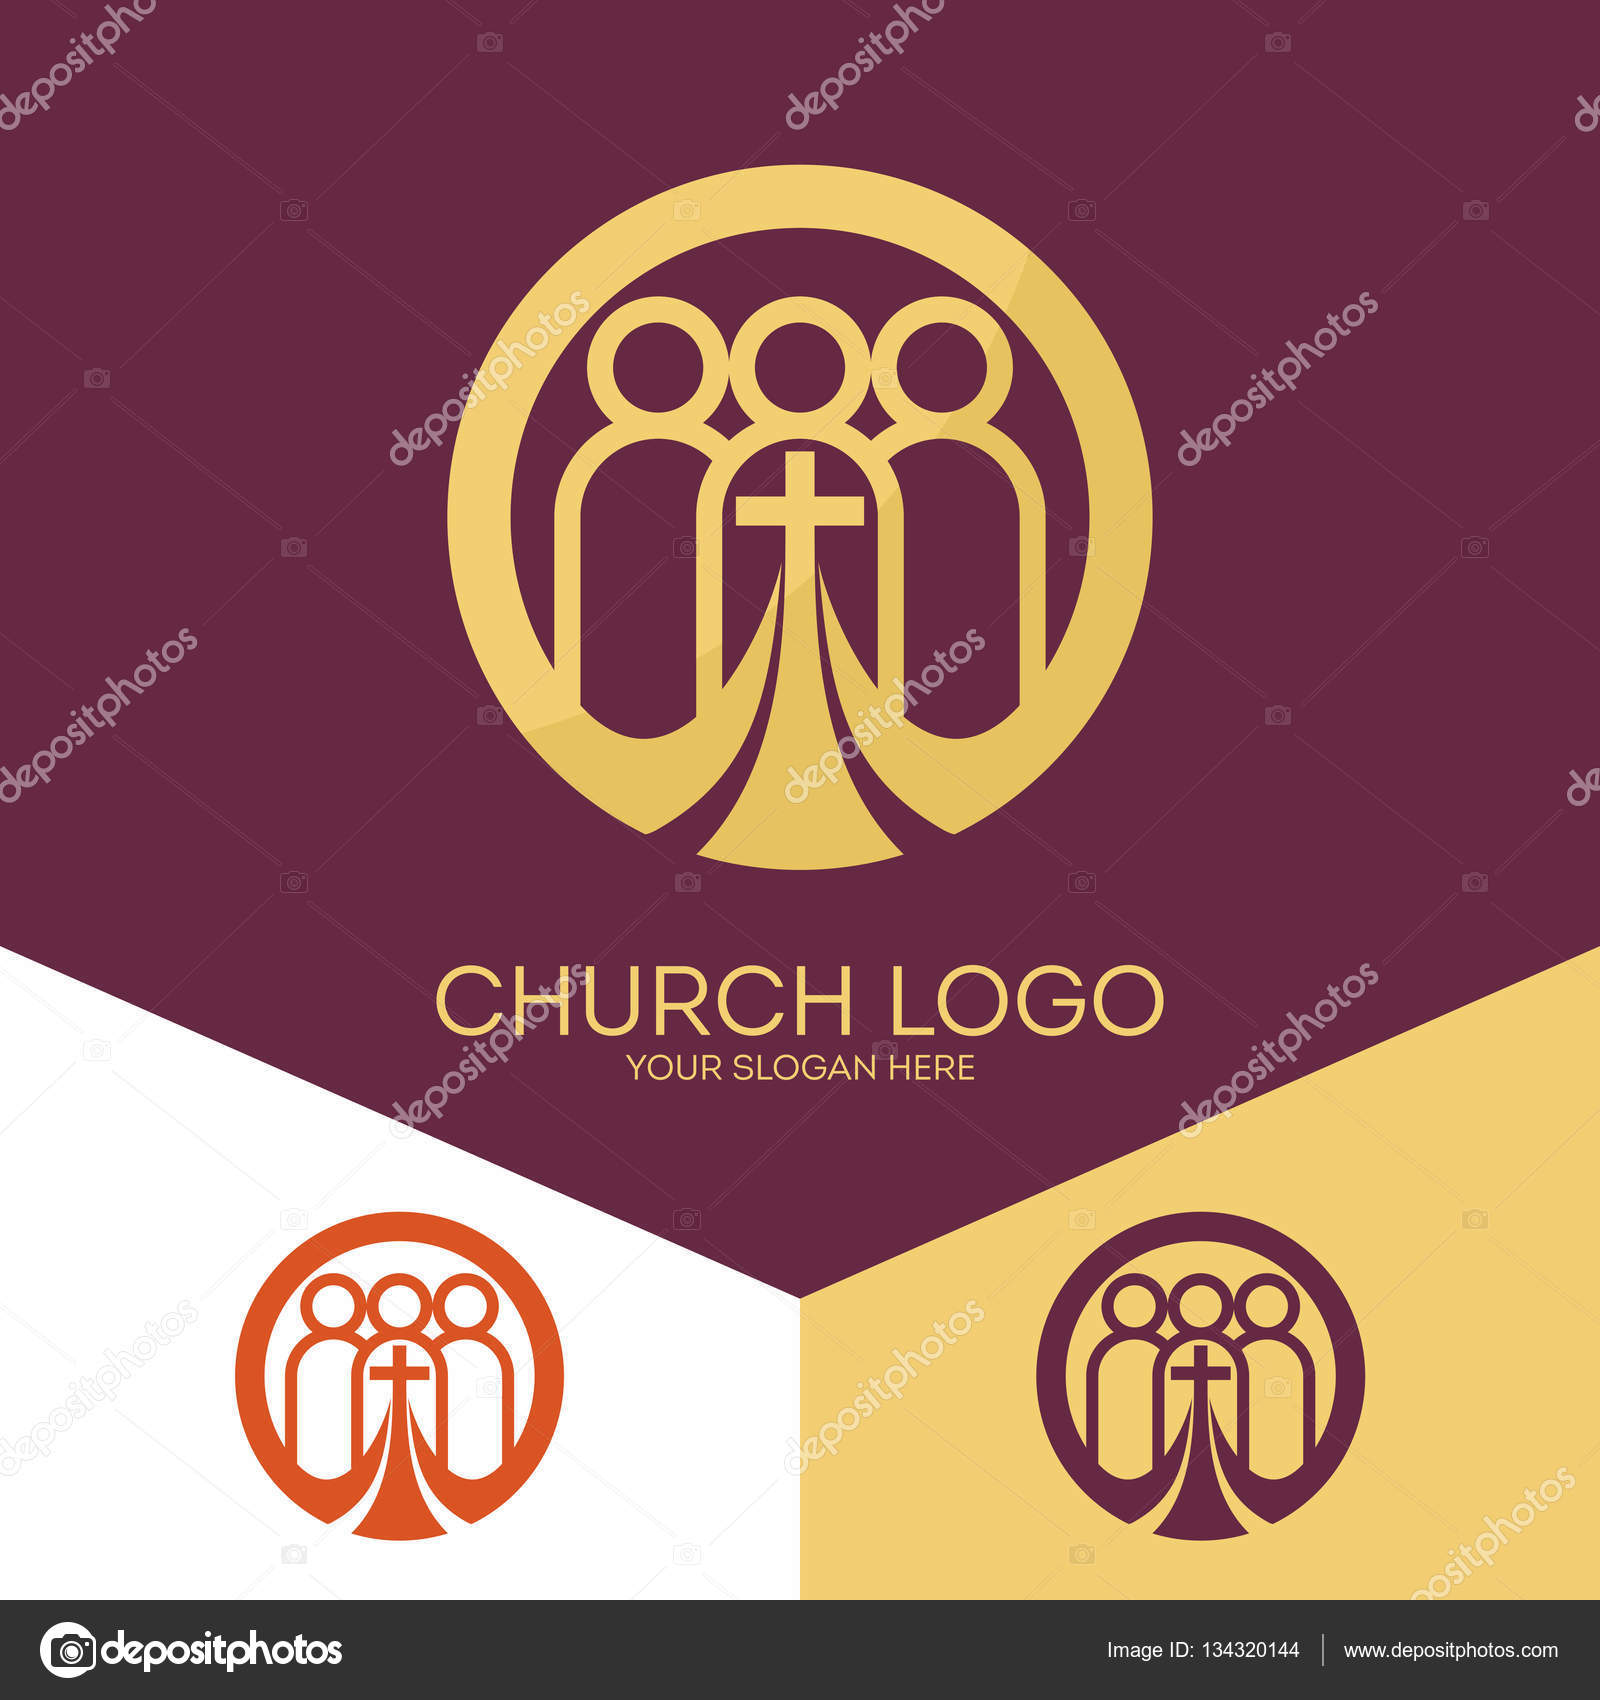 Church logo christian symbols church of god faithful to the lord church logo christian symbols church of god faithful to the lord jesus christ buycottarizona Image collections